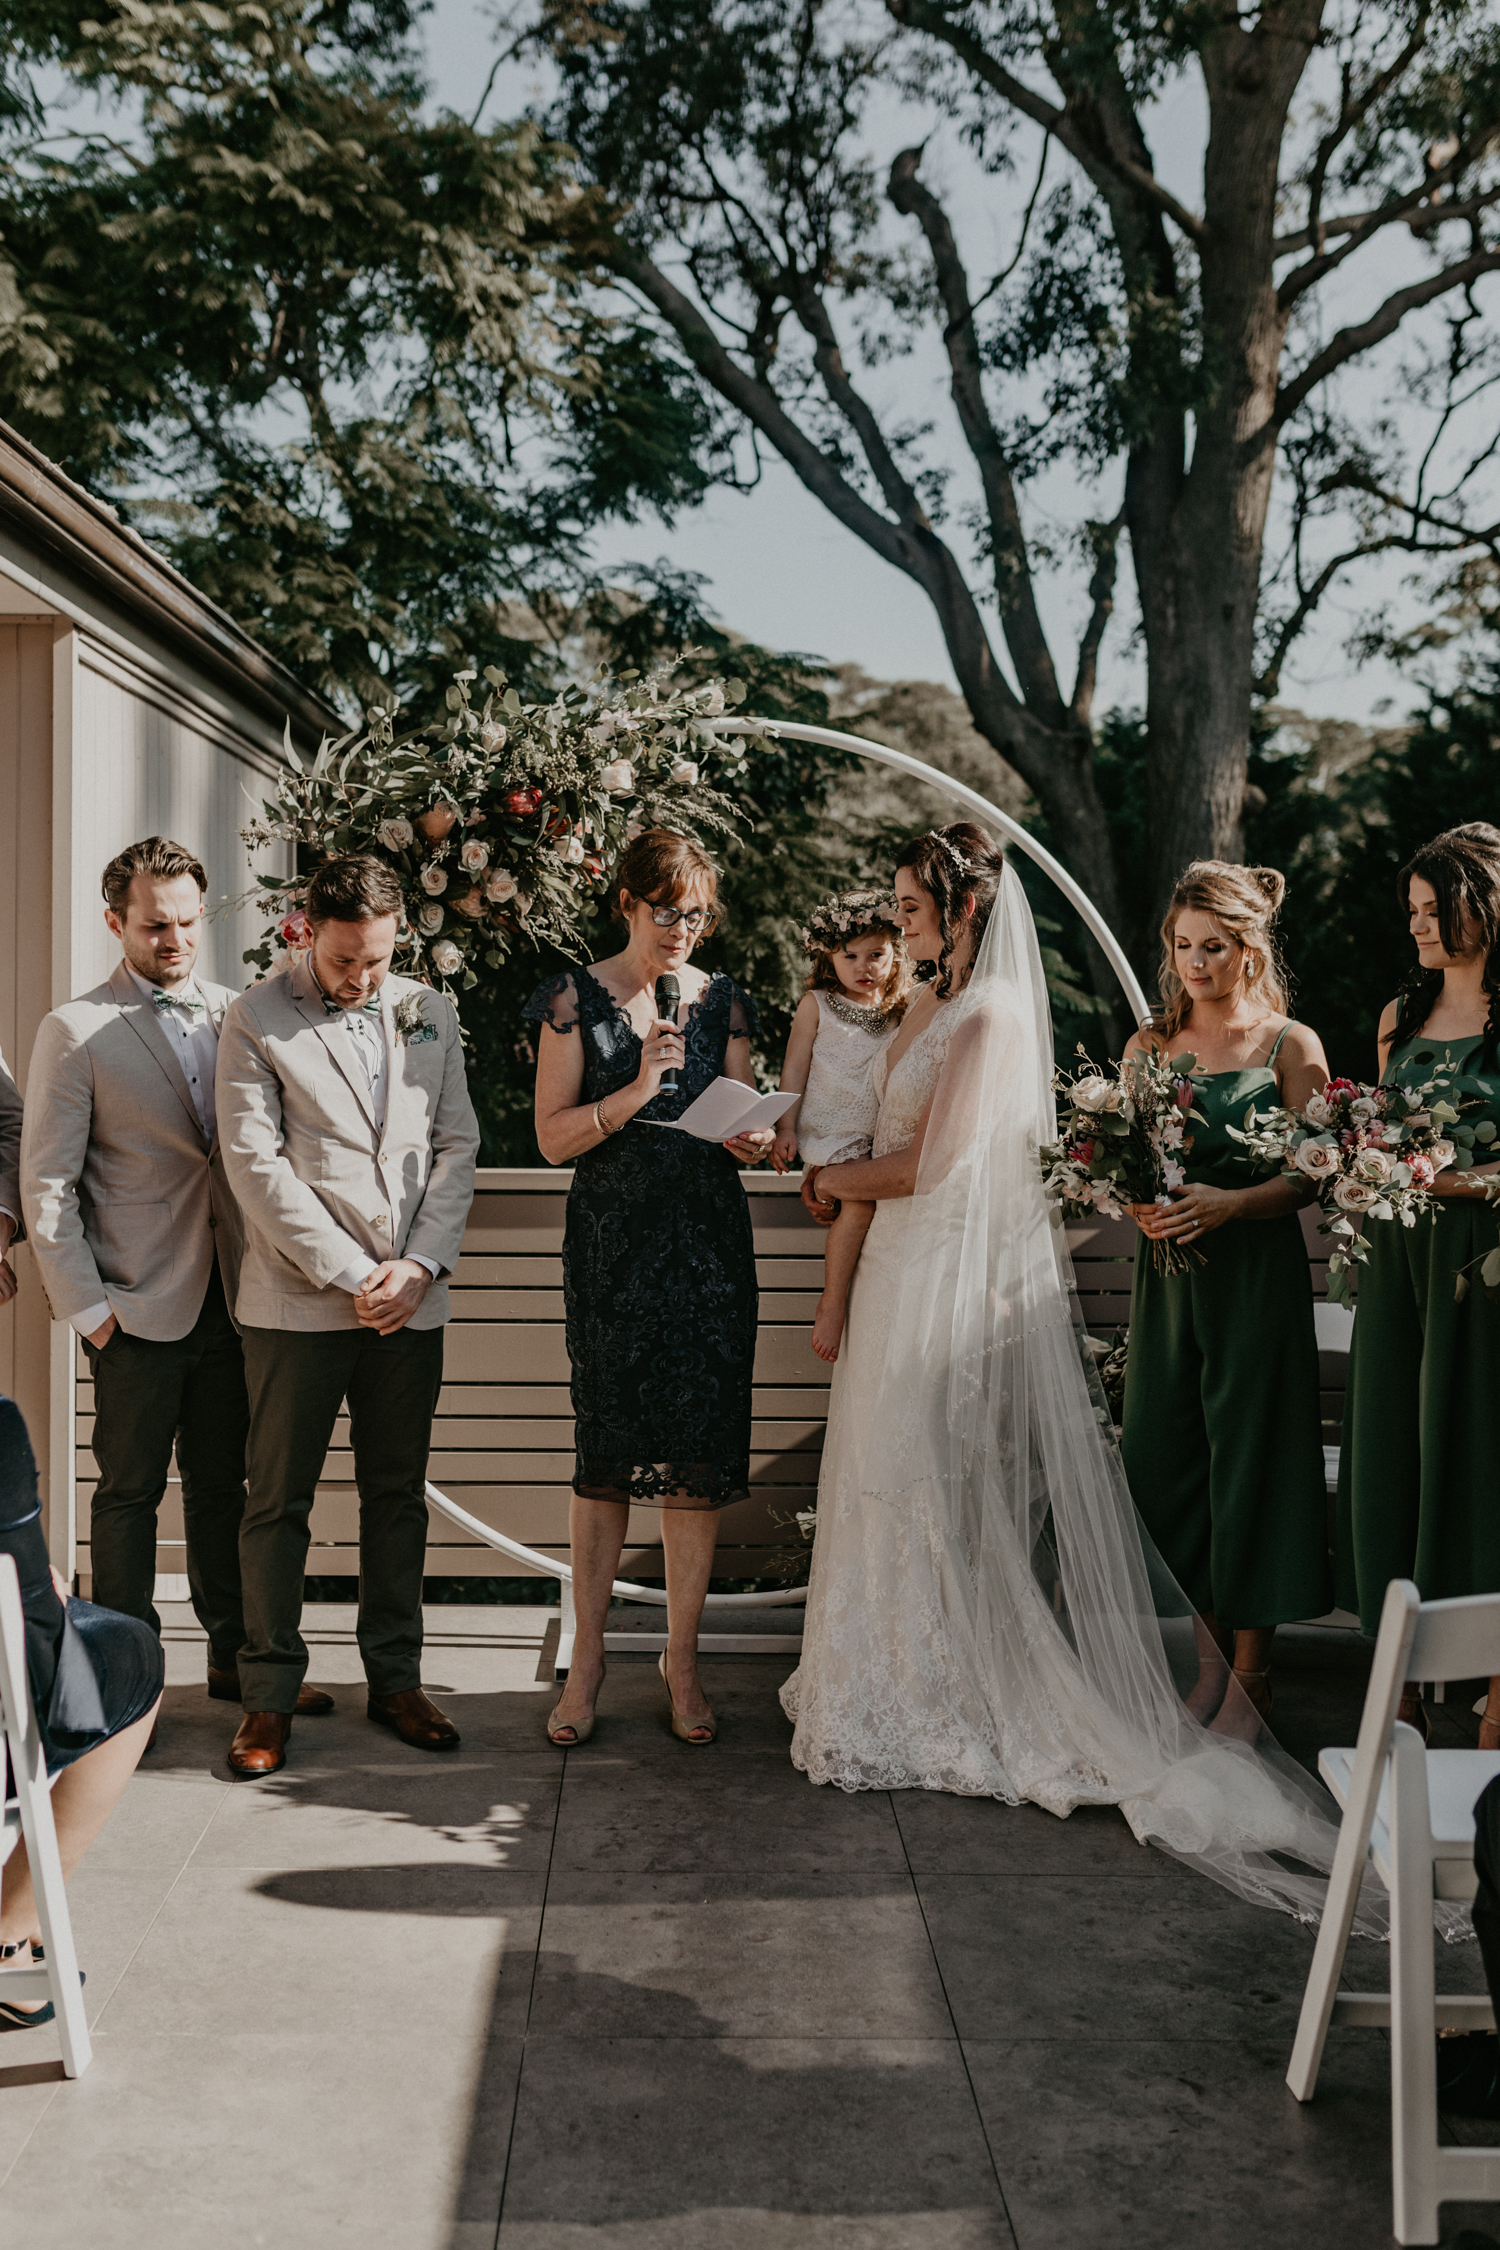 Sydney Romantic Authentic Natural Free Spirit Candid Wedding Photography-39.jpg